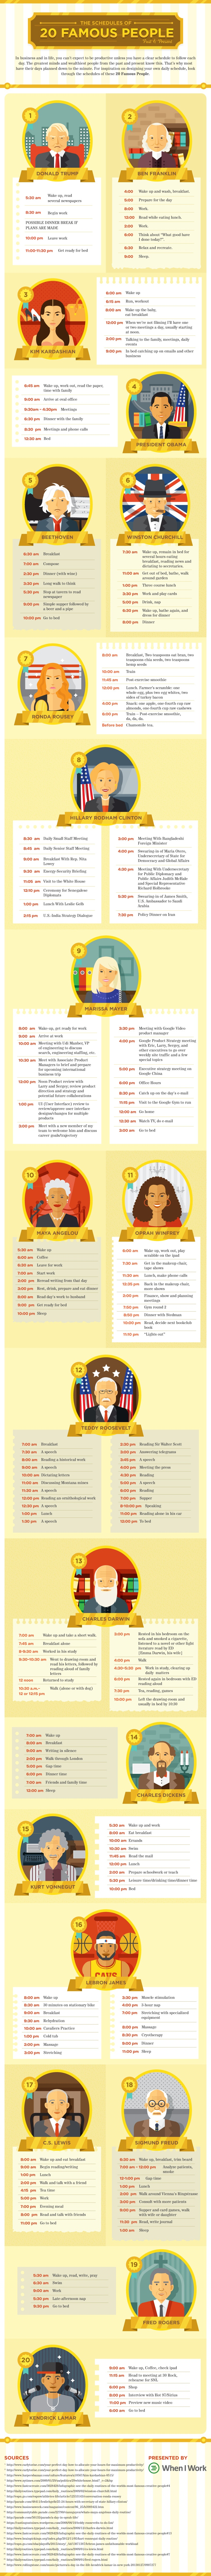 The-Schedules-of-20-Famous-People.jpg